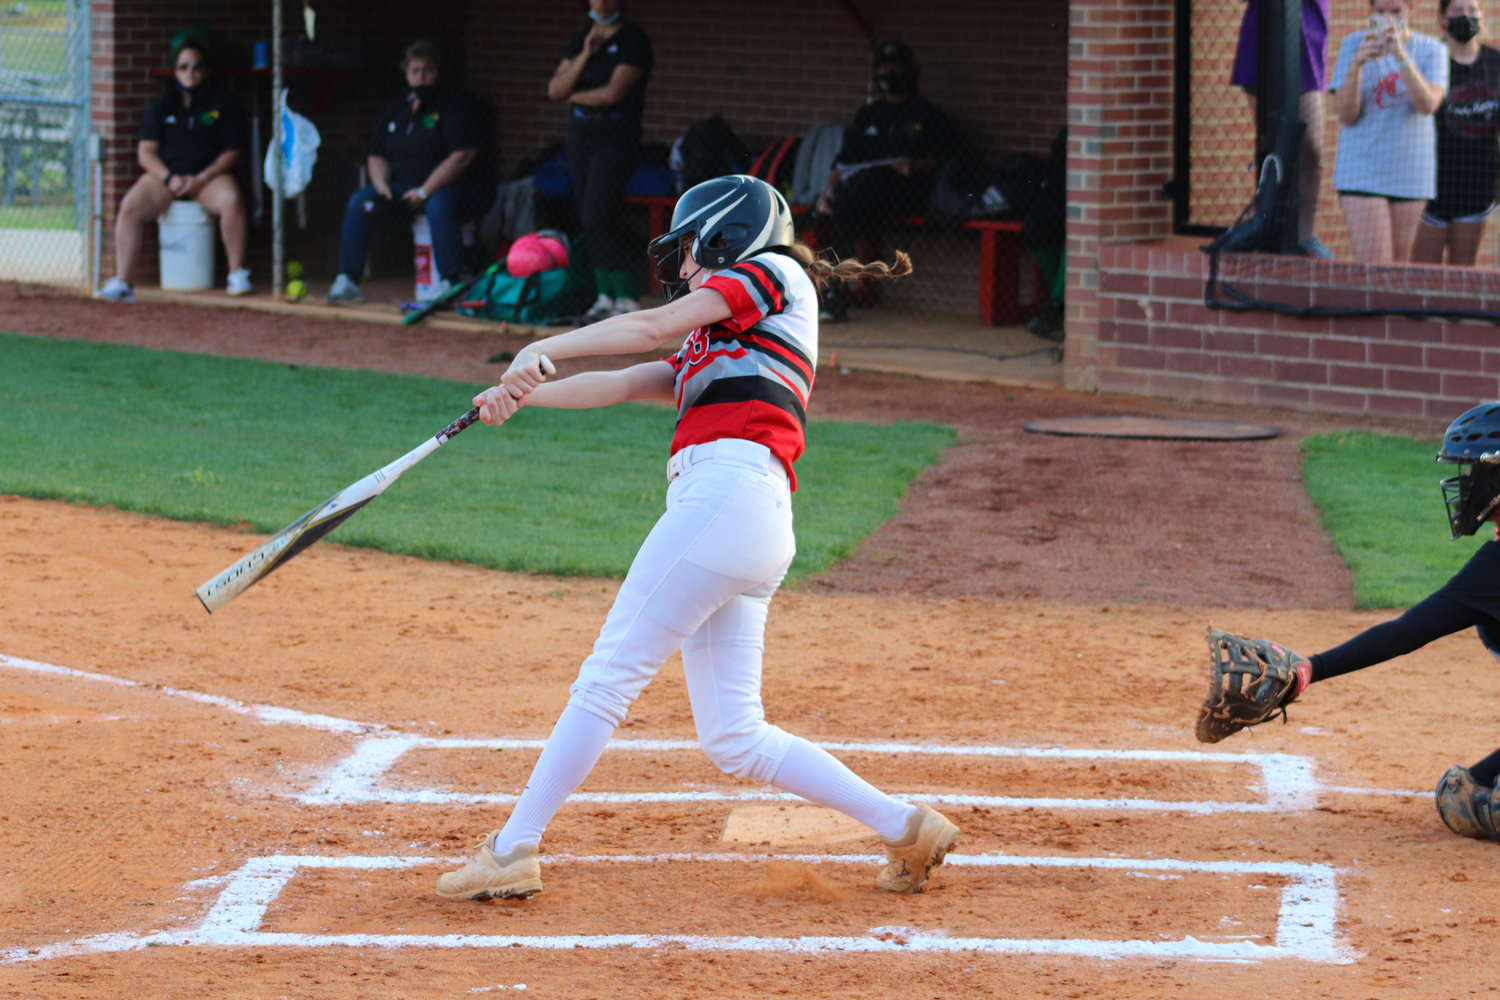 Chatham Central junior Gracie Gaines swings at a pitch in her team's 12-0 victory over North Rowan on March 30. Gaines led the team with 4 RBI on the night.